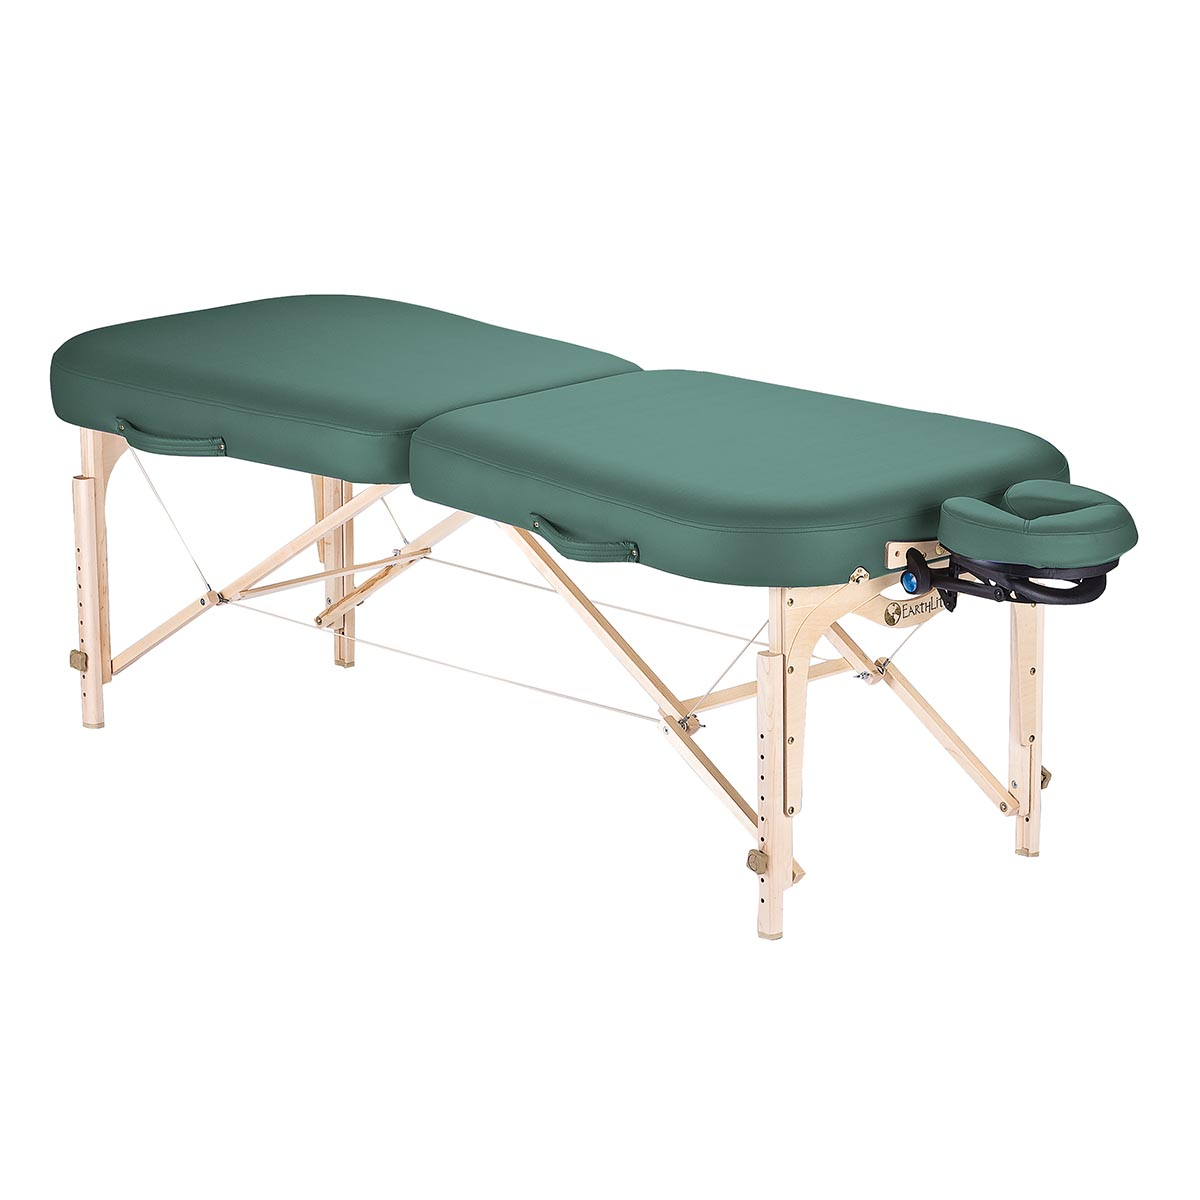 Earthlite infinity table package massage tables for Massage table